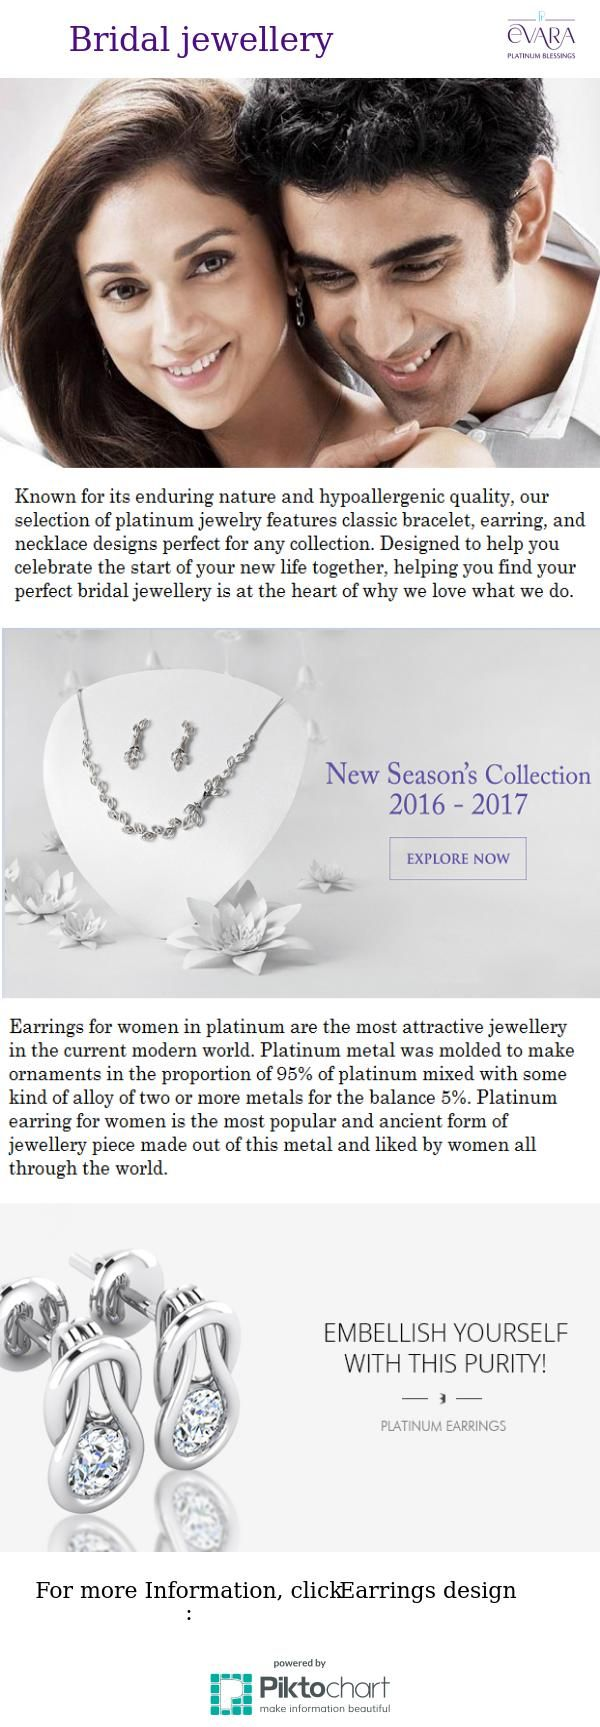 Evara presents Platinum Bridal jewellery collection to serve to all occasions related to Indian weddings.